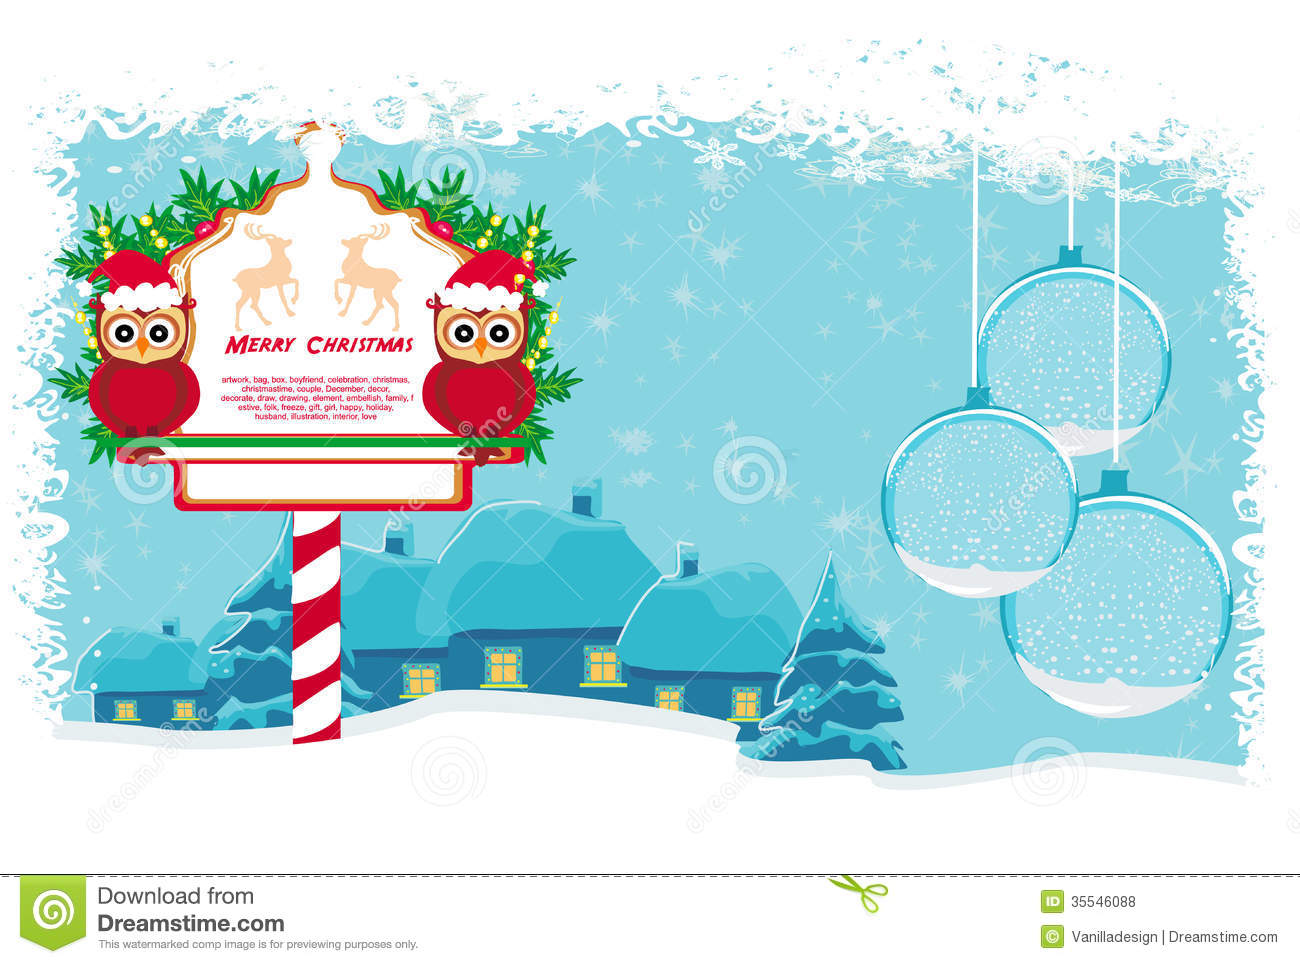 Winter Card With Cute Owls Royalty Free Stock Photos   Image  35546088